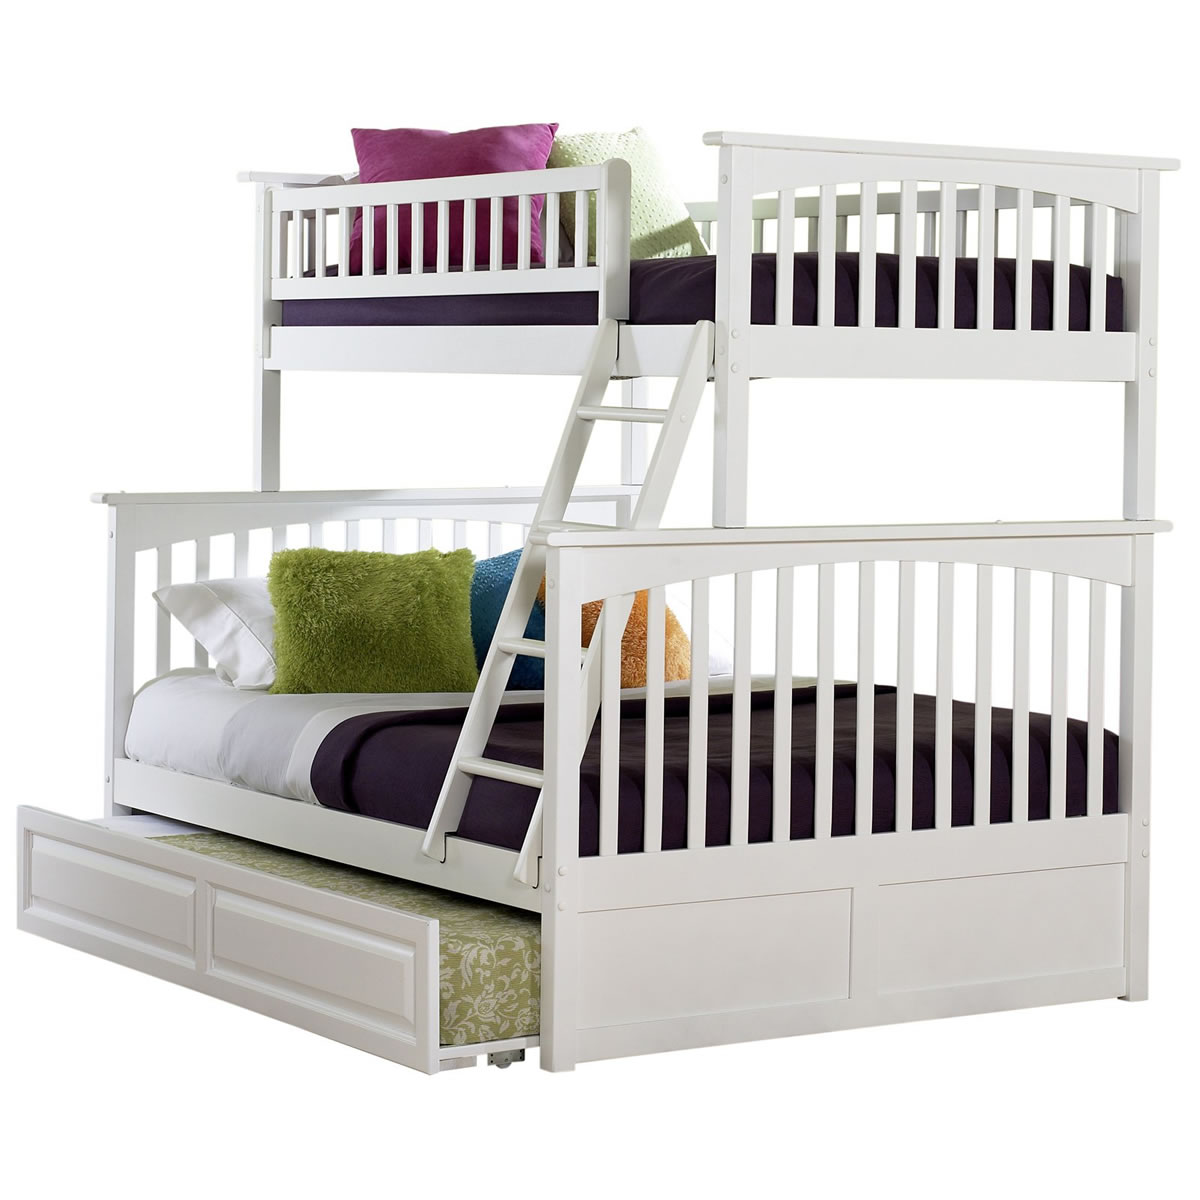 White Bunk Beds And Loft Beds Browse Read Reviews Discover Best Deals